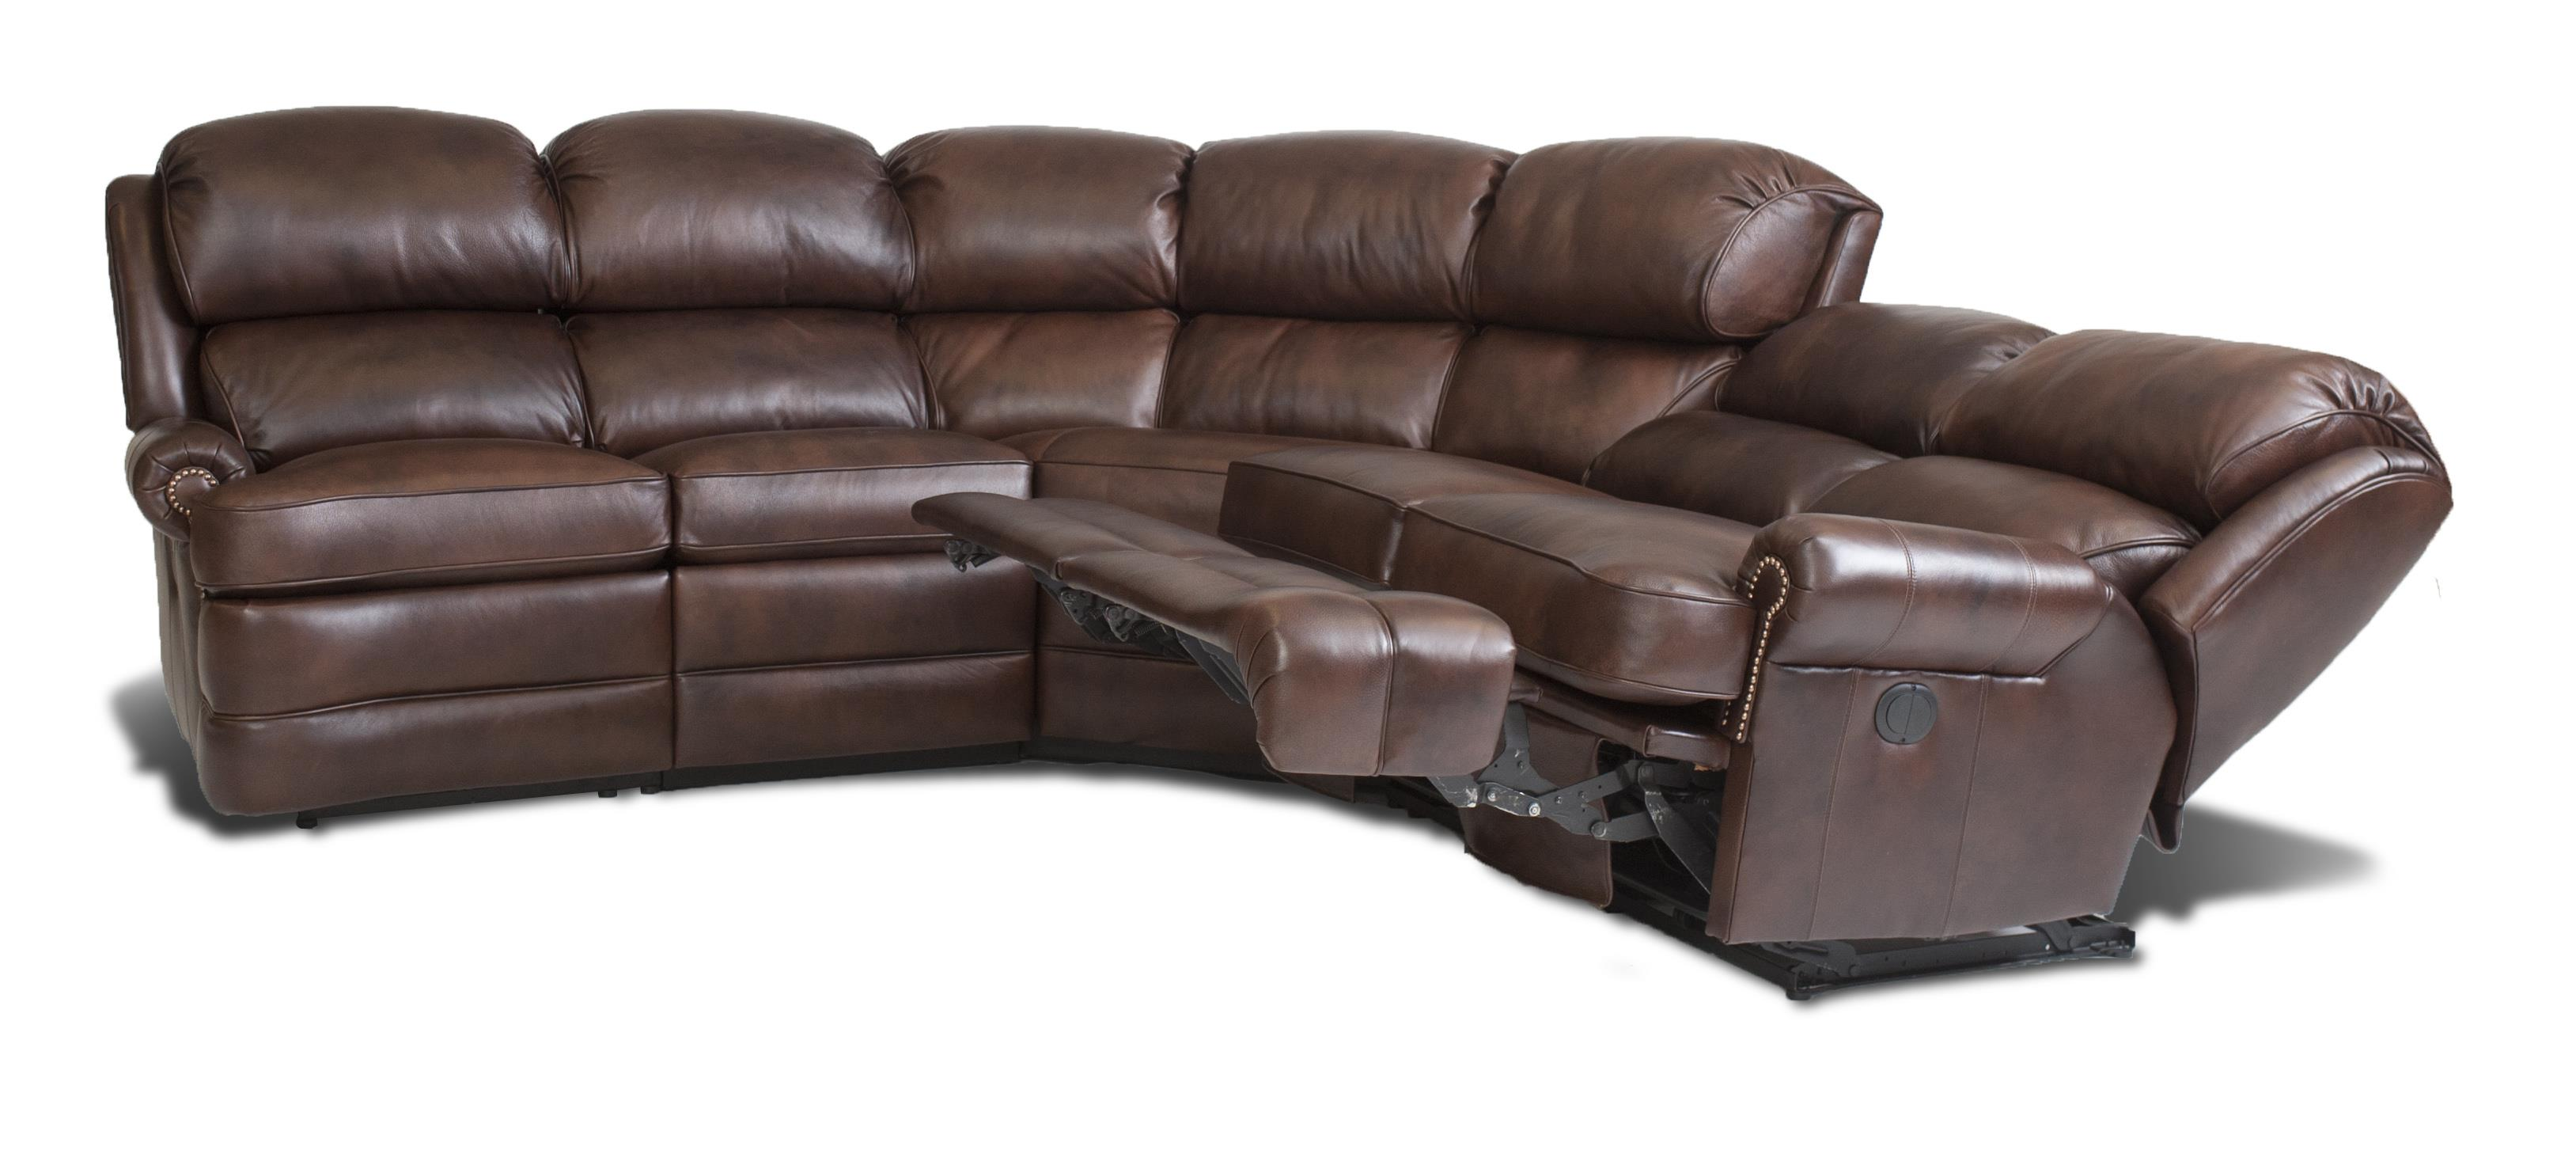 Reclining sectional sofa for 5 piece reclining sectional sofa